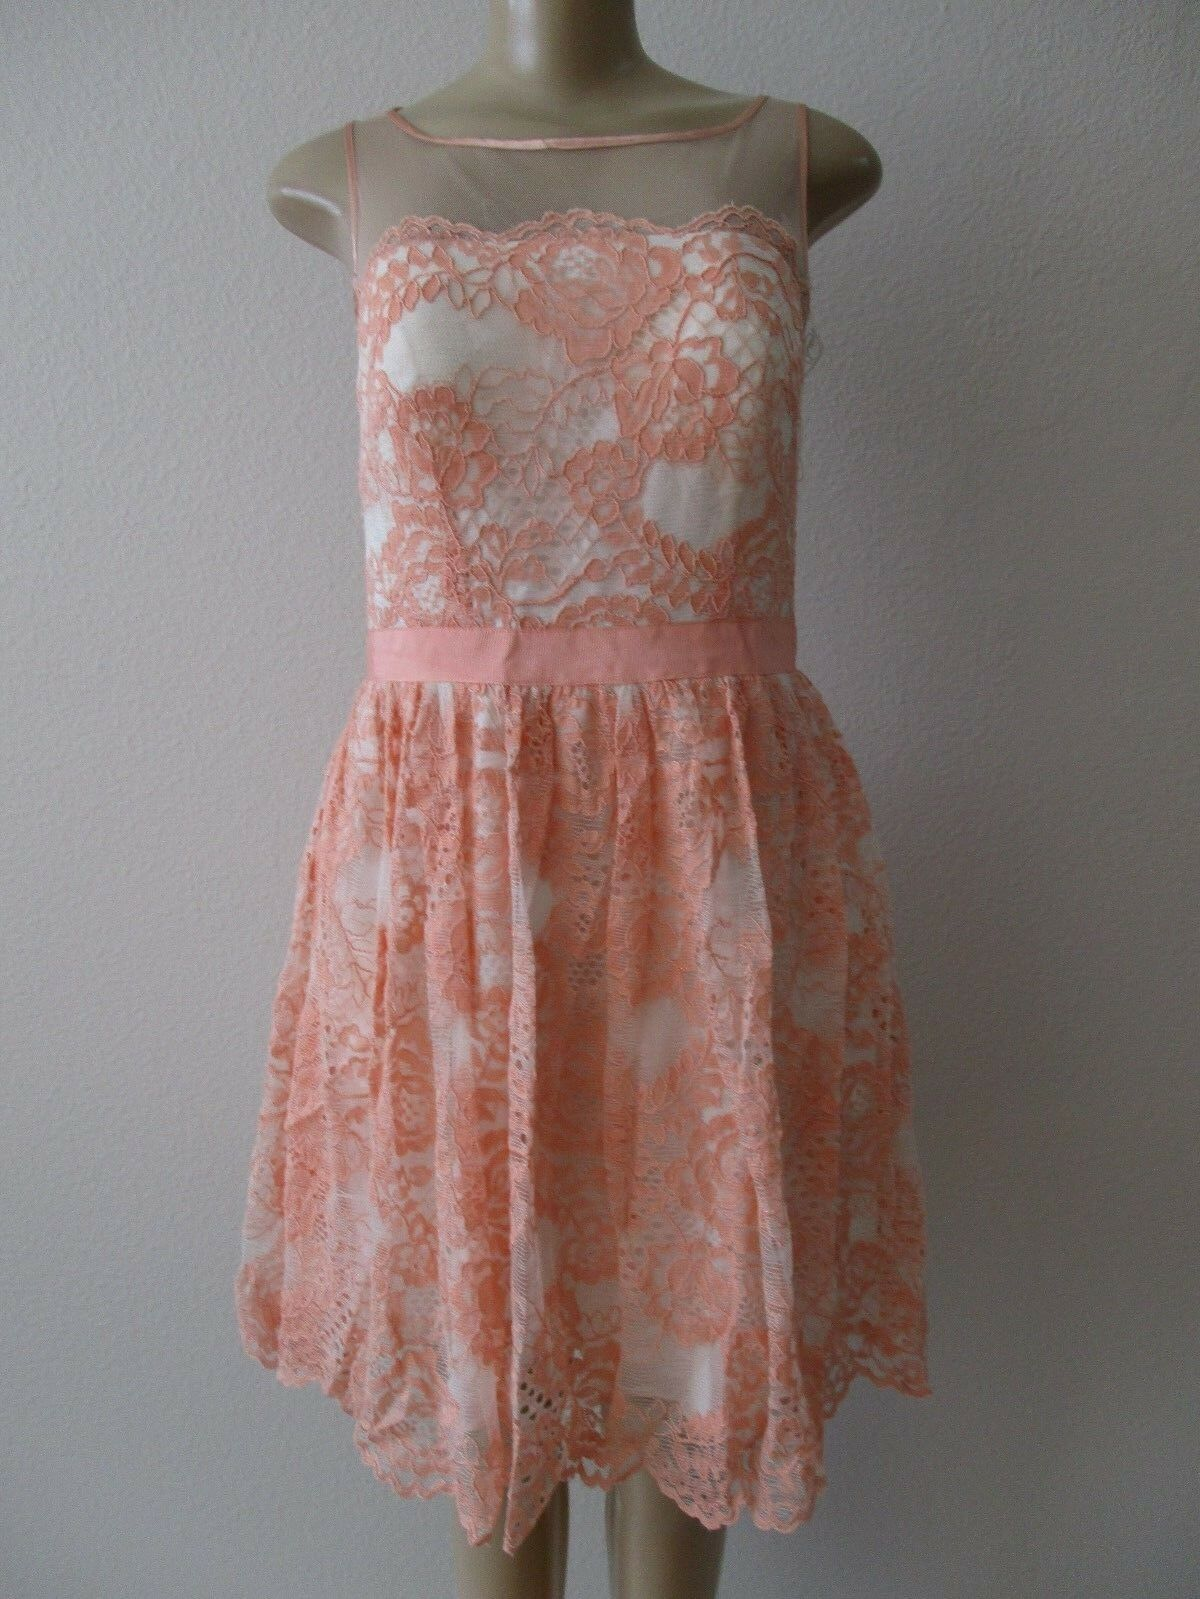 AQUA PEACH LACE-UP FLORAL PARTY SLEEVELESS DRESS SIZE 8 - NWT